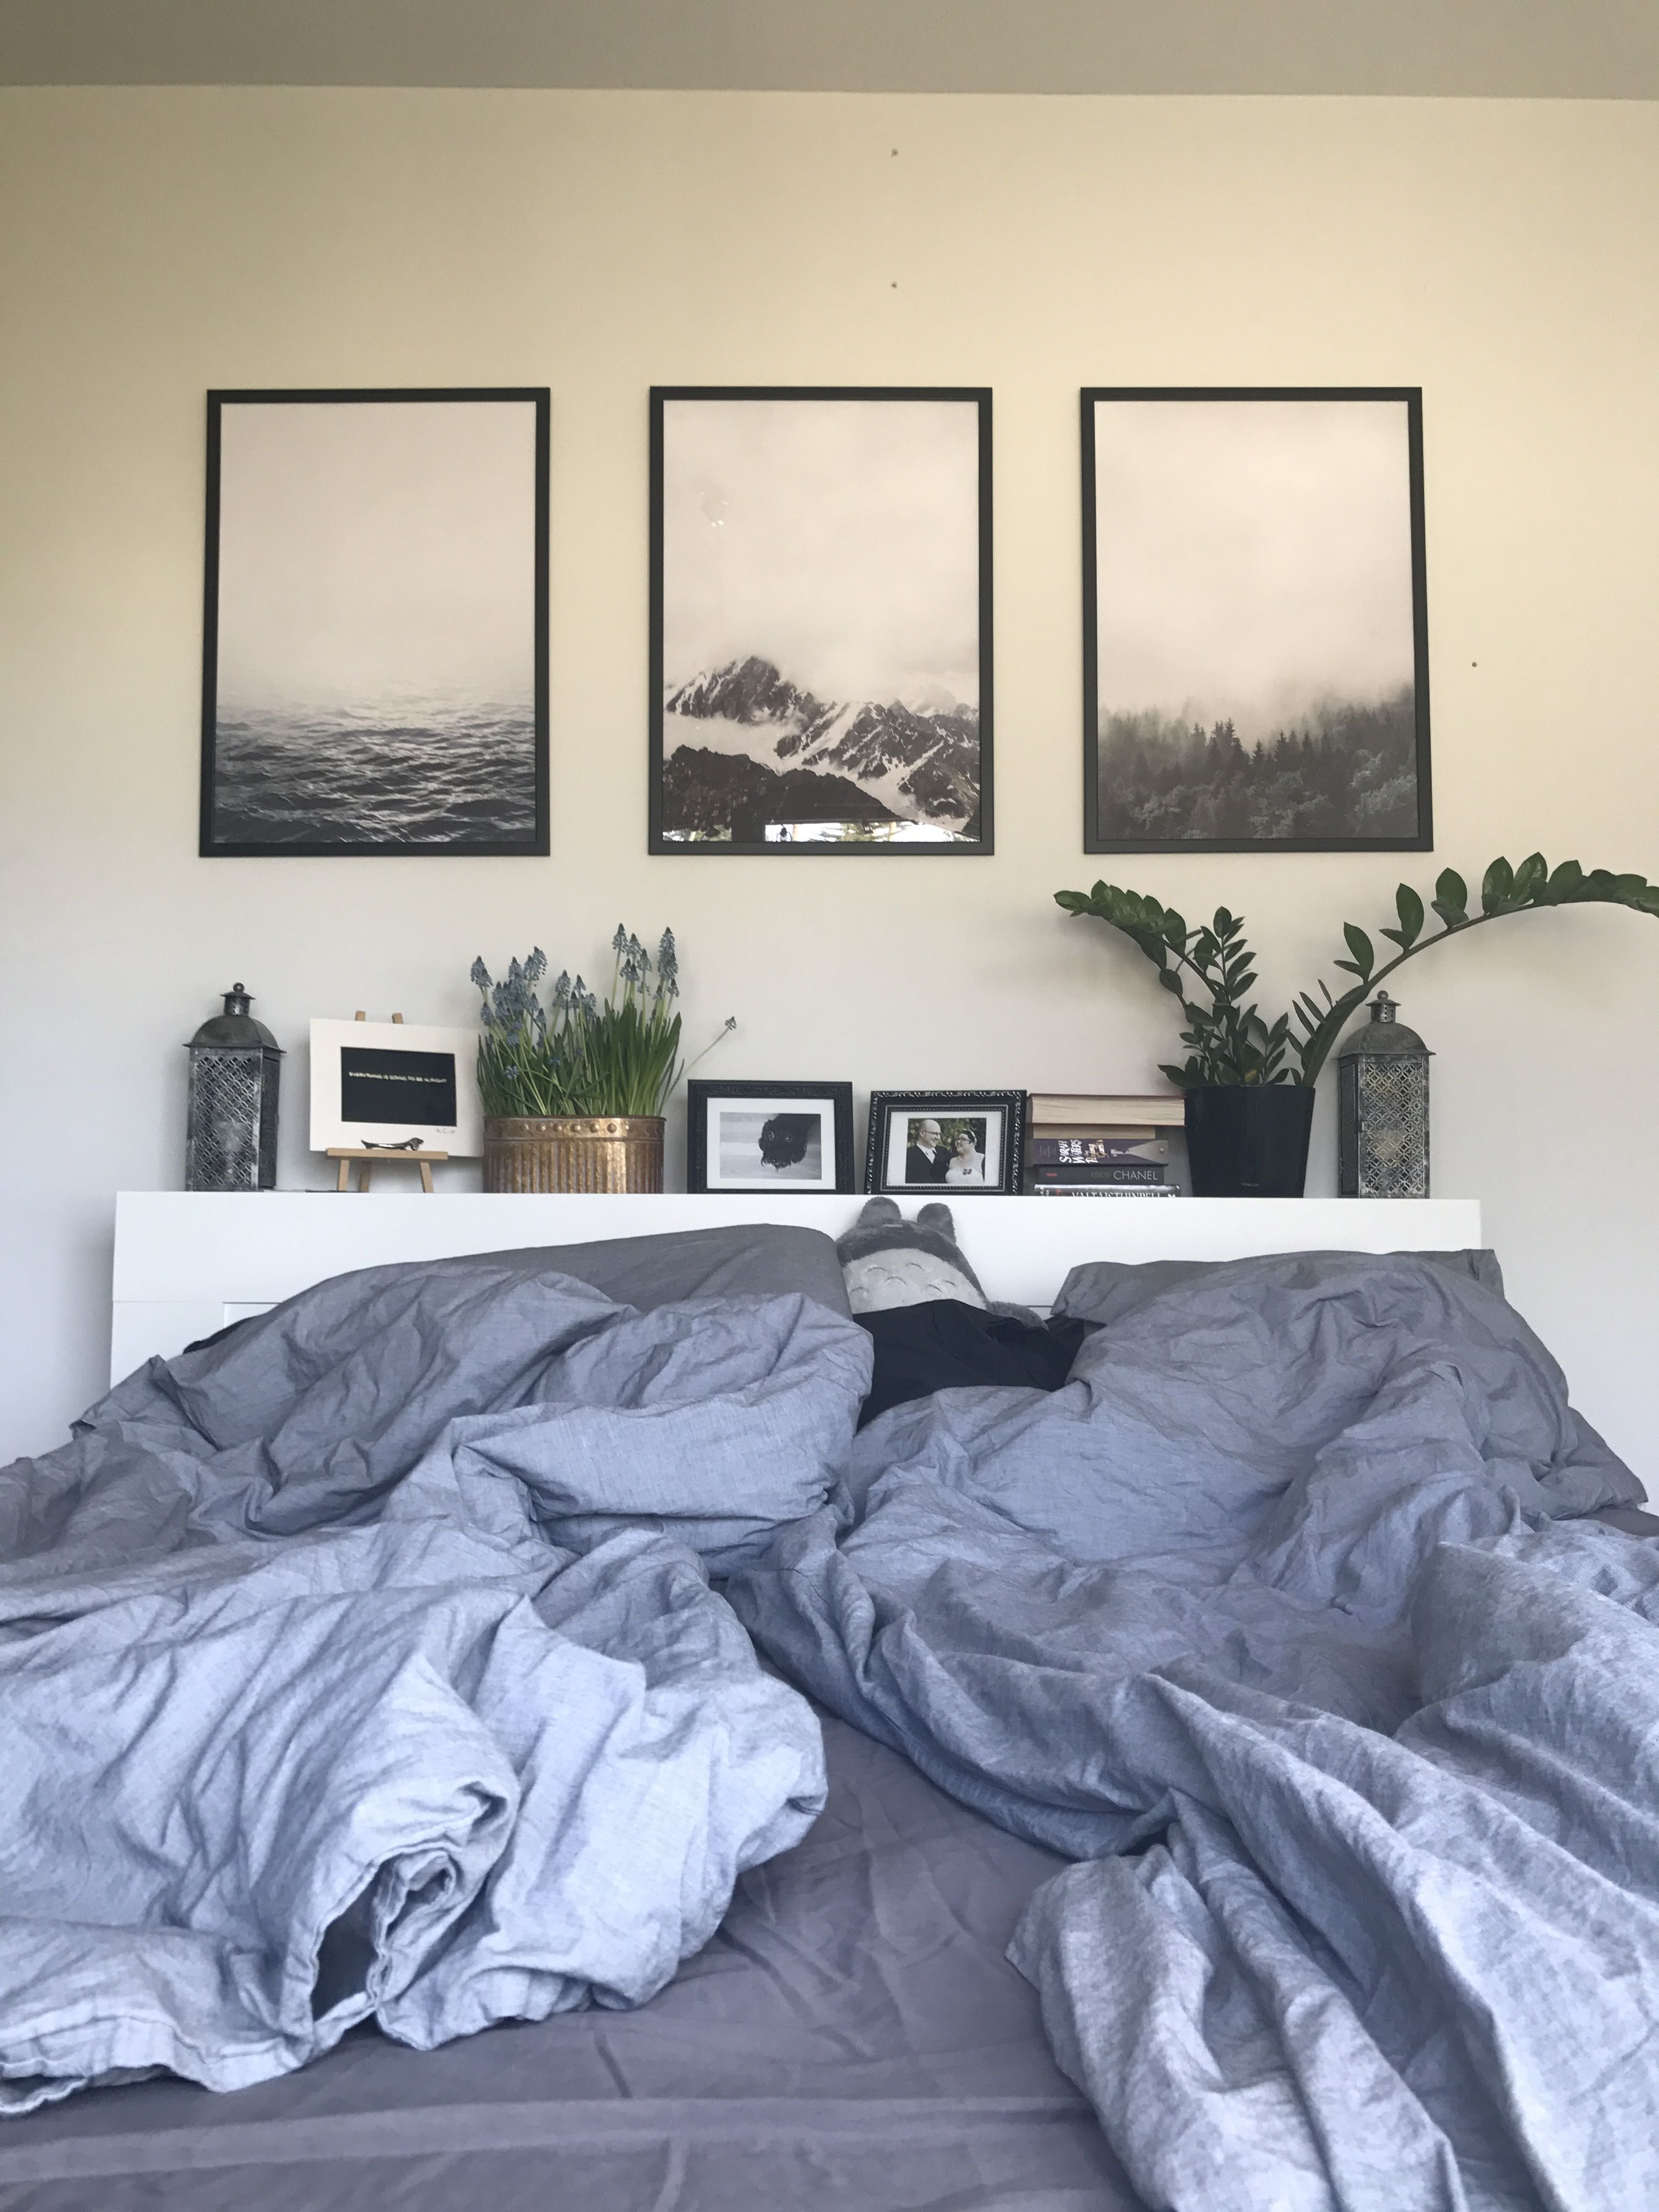 Schilderijen boven bed - Bedroom Inspiration | Pinterest ...